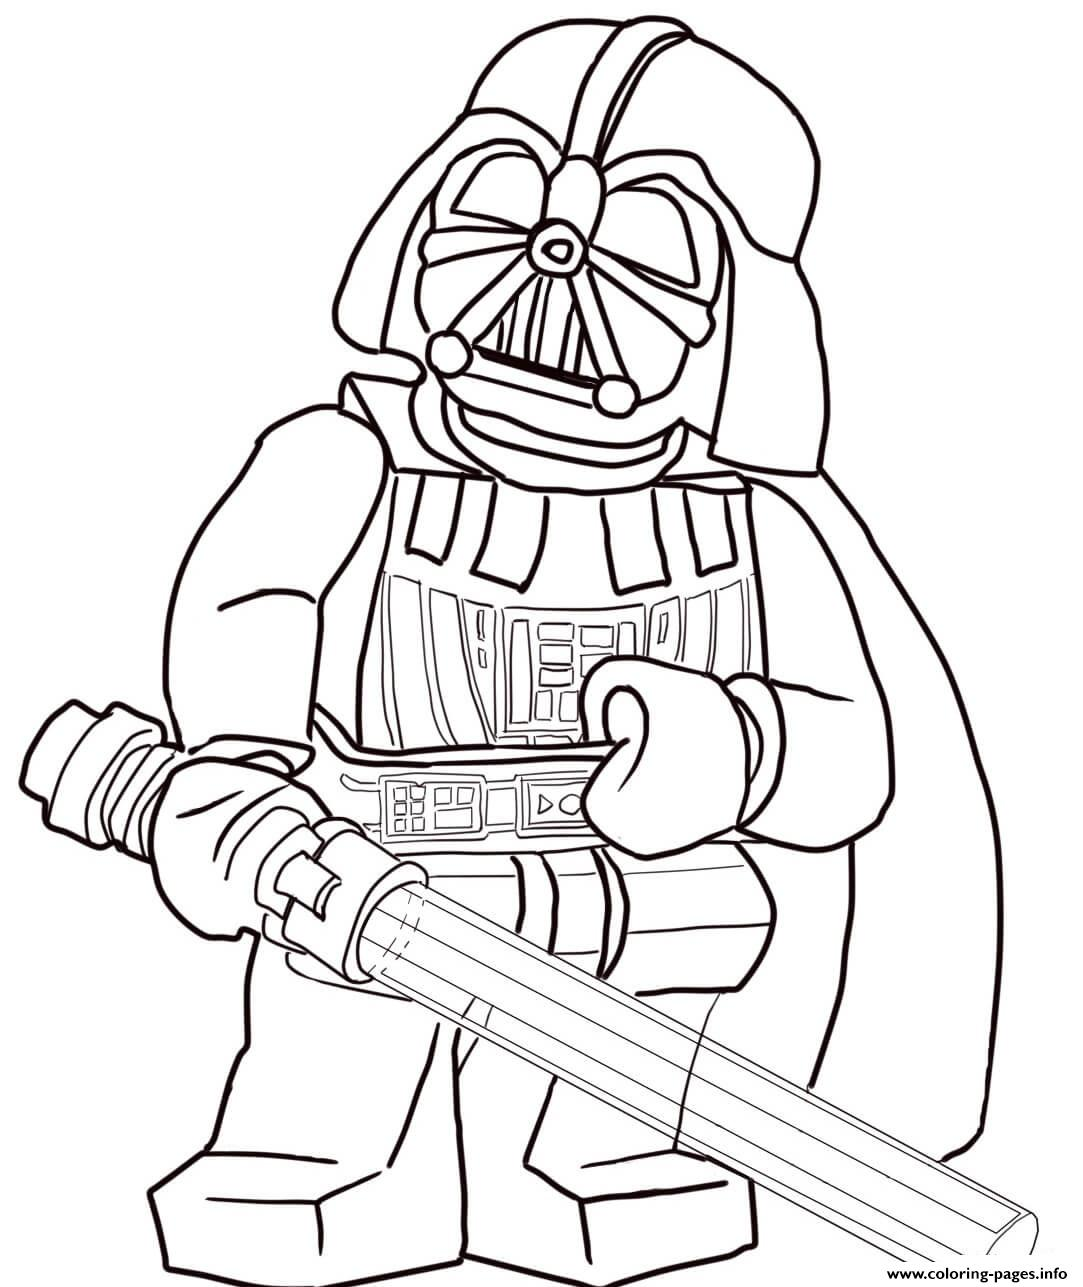 Darth Vader Christmas Coloring Pages With Lego Star Wars Printable